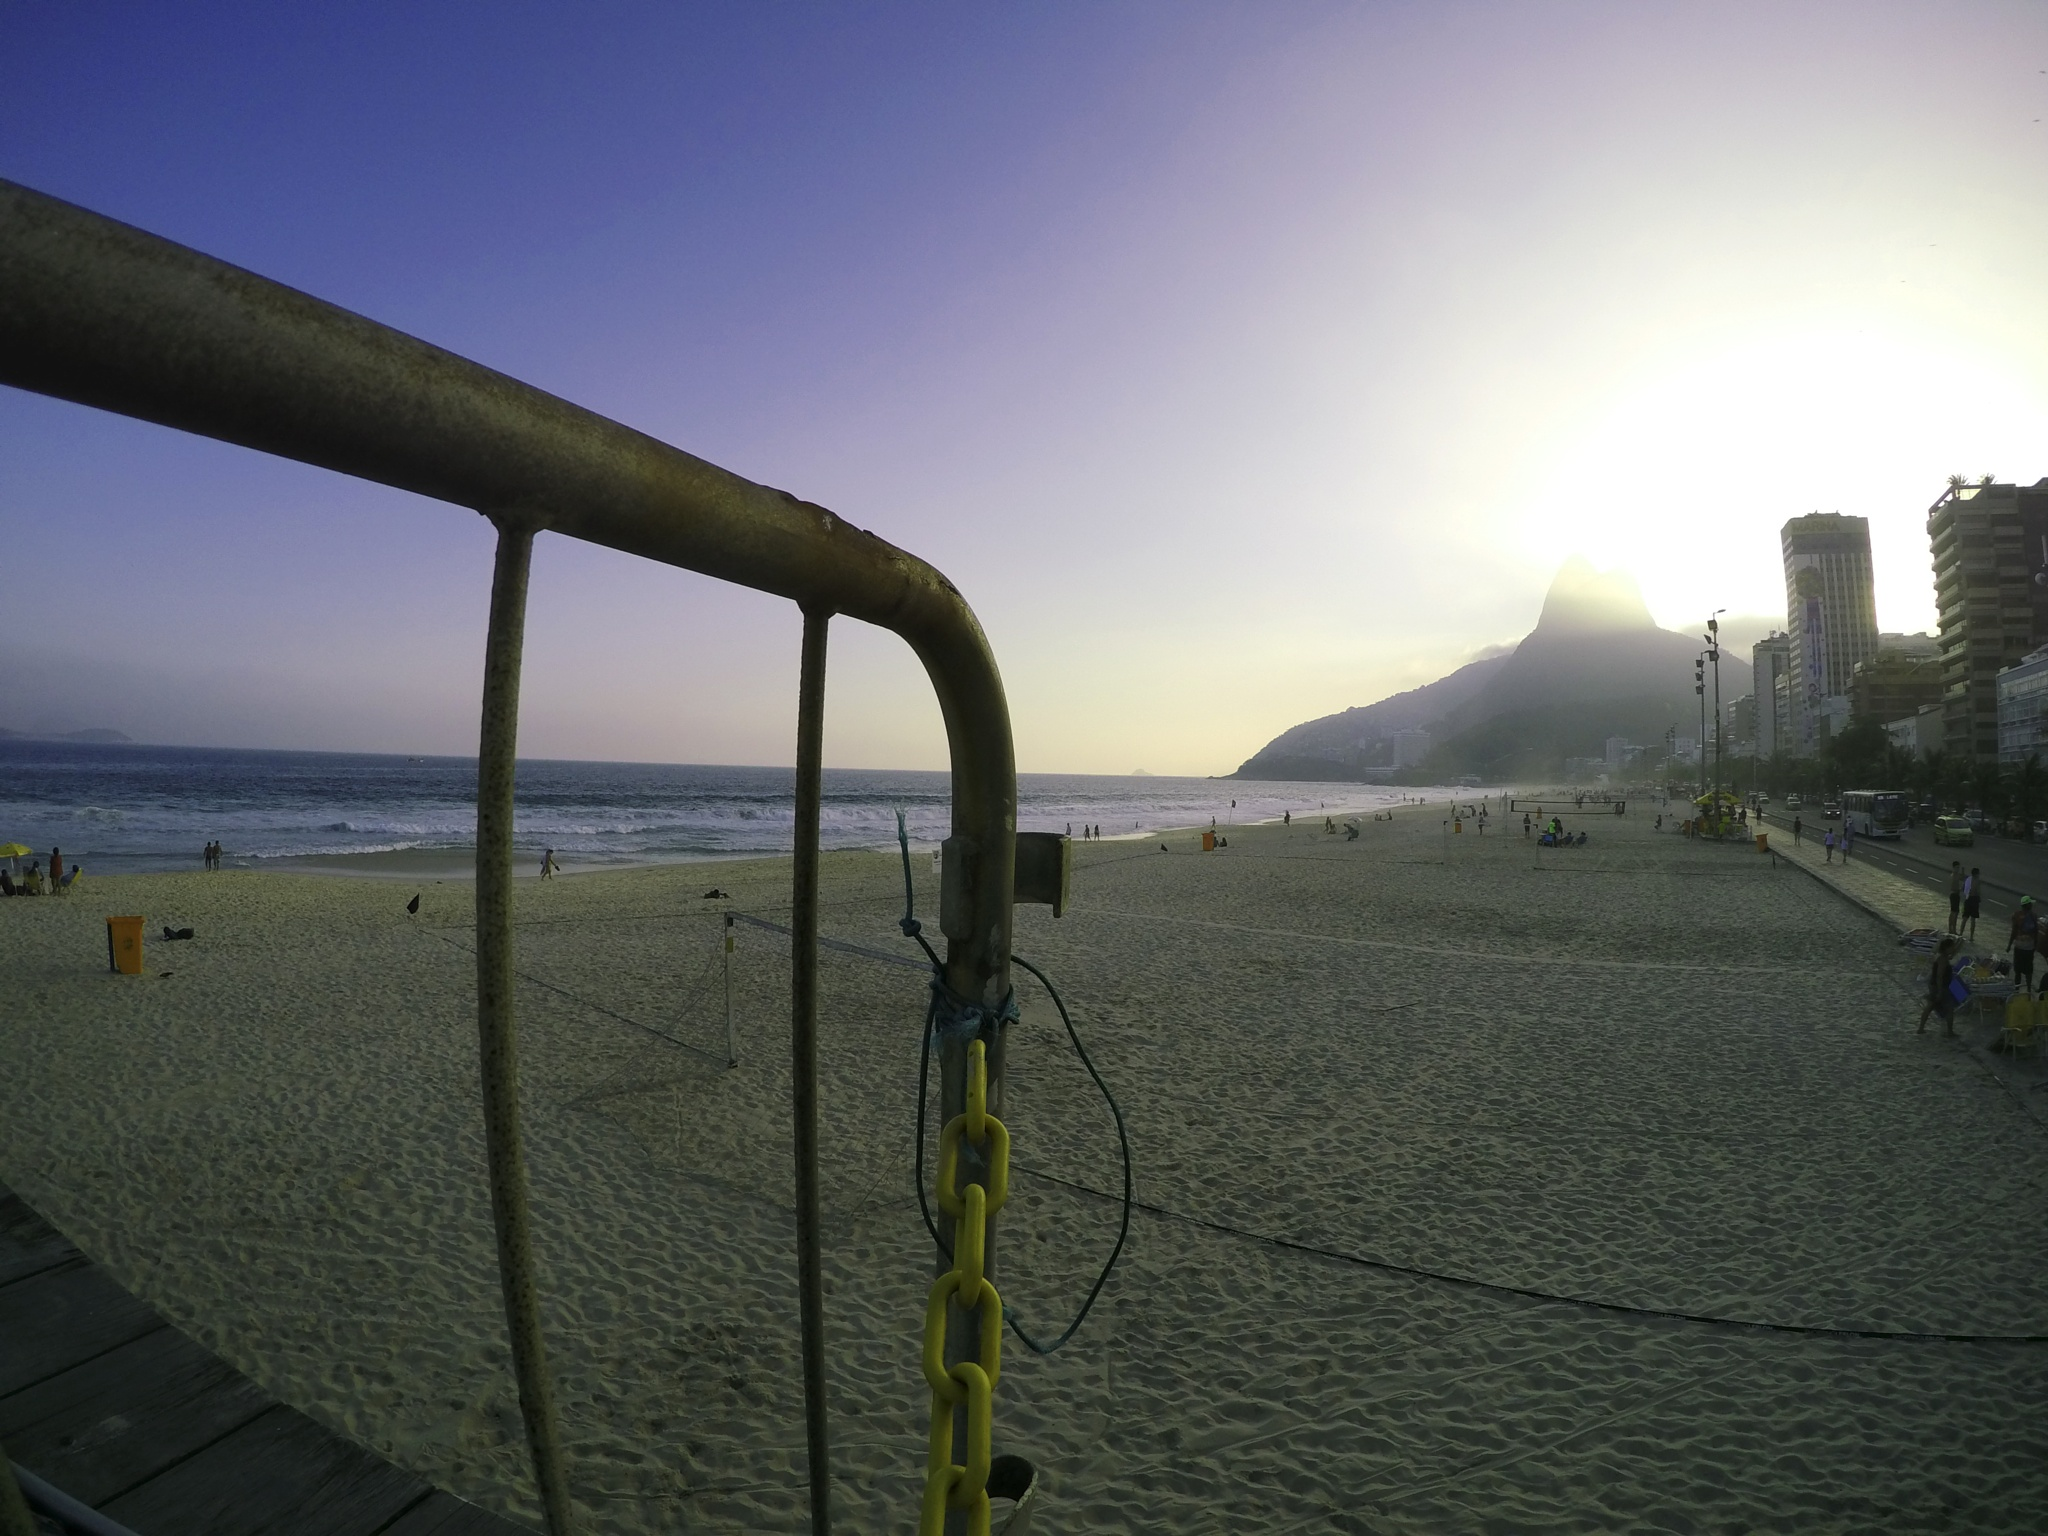 Ipanema beach by Marcelo Zal Riani